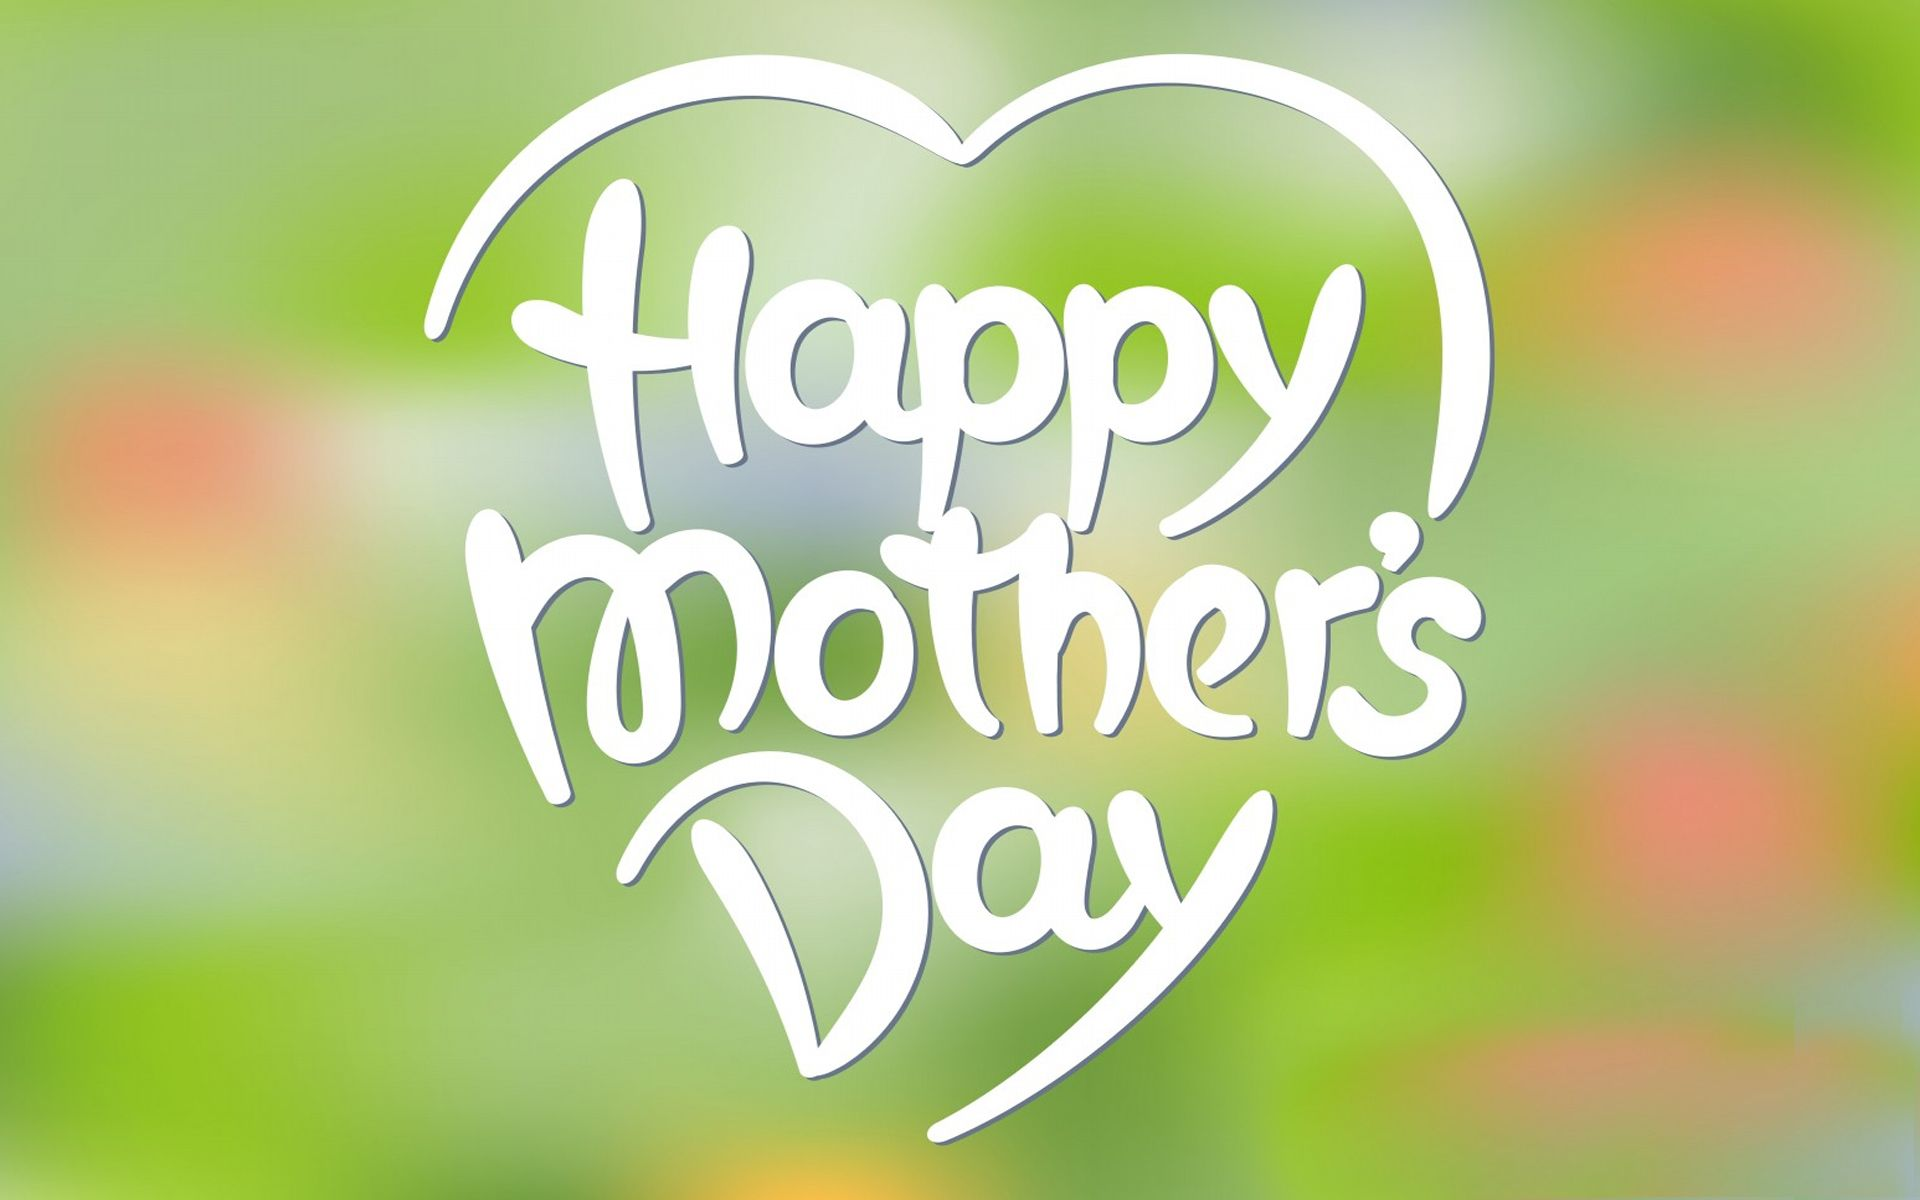 Happy Mothers Day 2018 Images Photos Pics Wallpapers HD 1920x1200